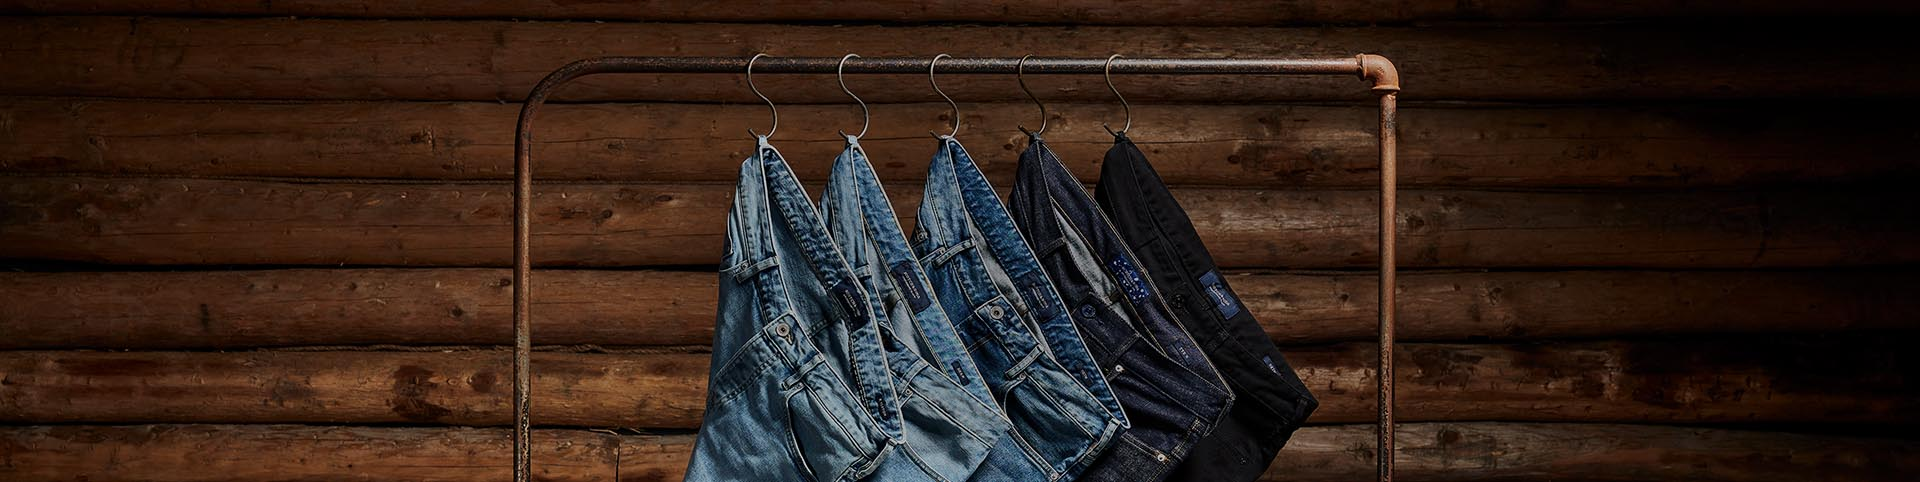 Hommes Jeans